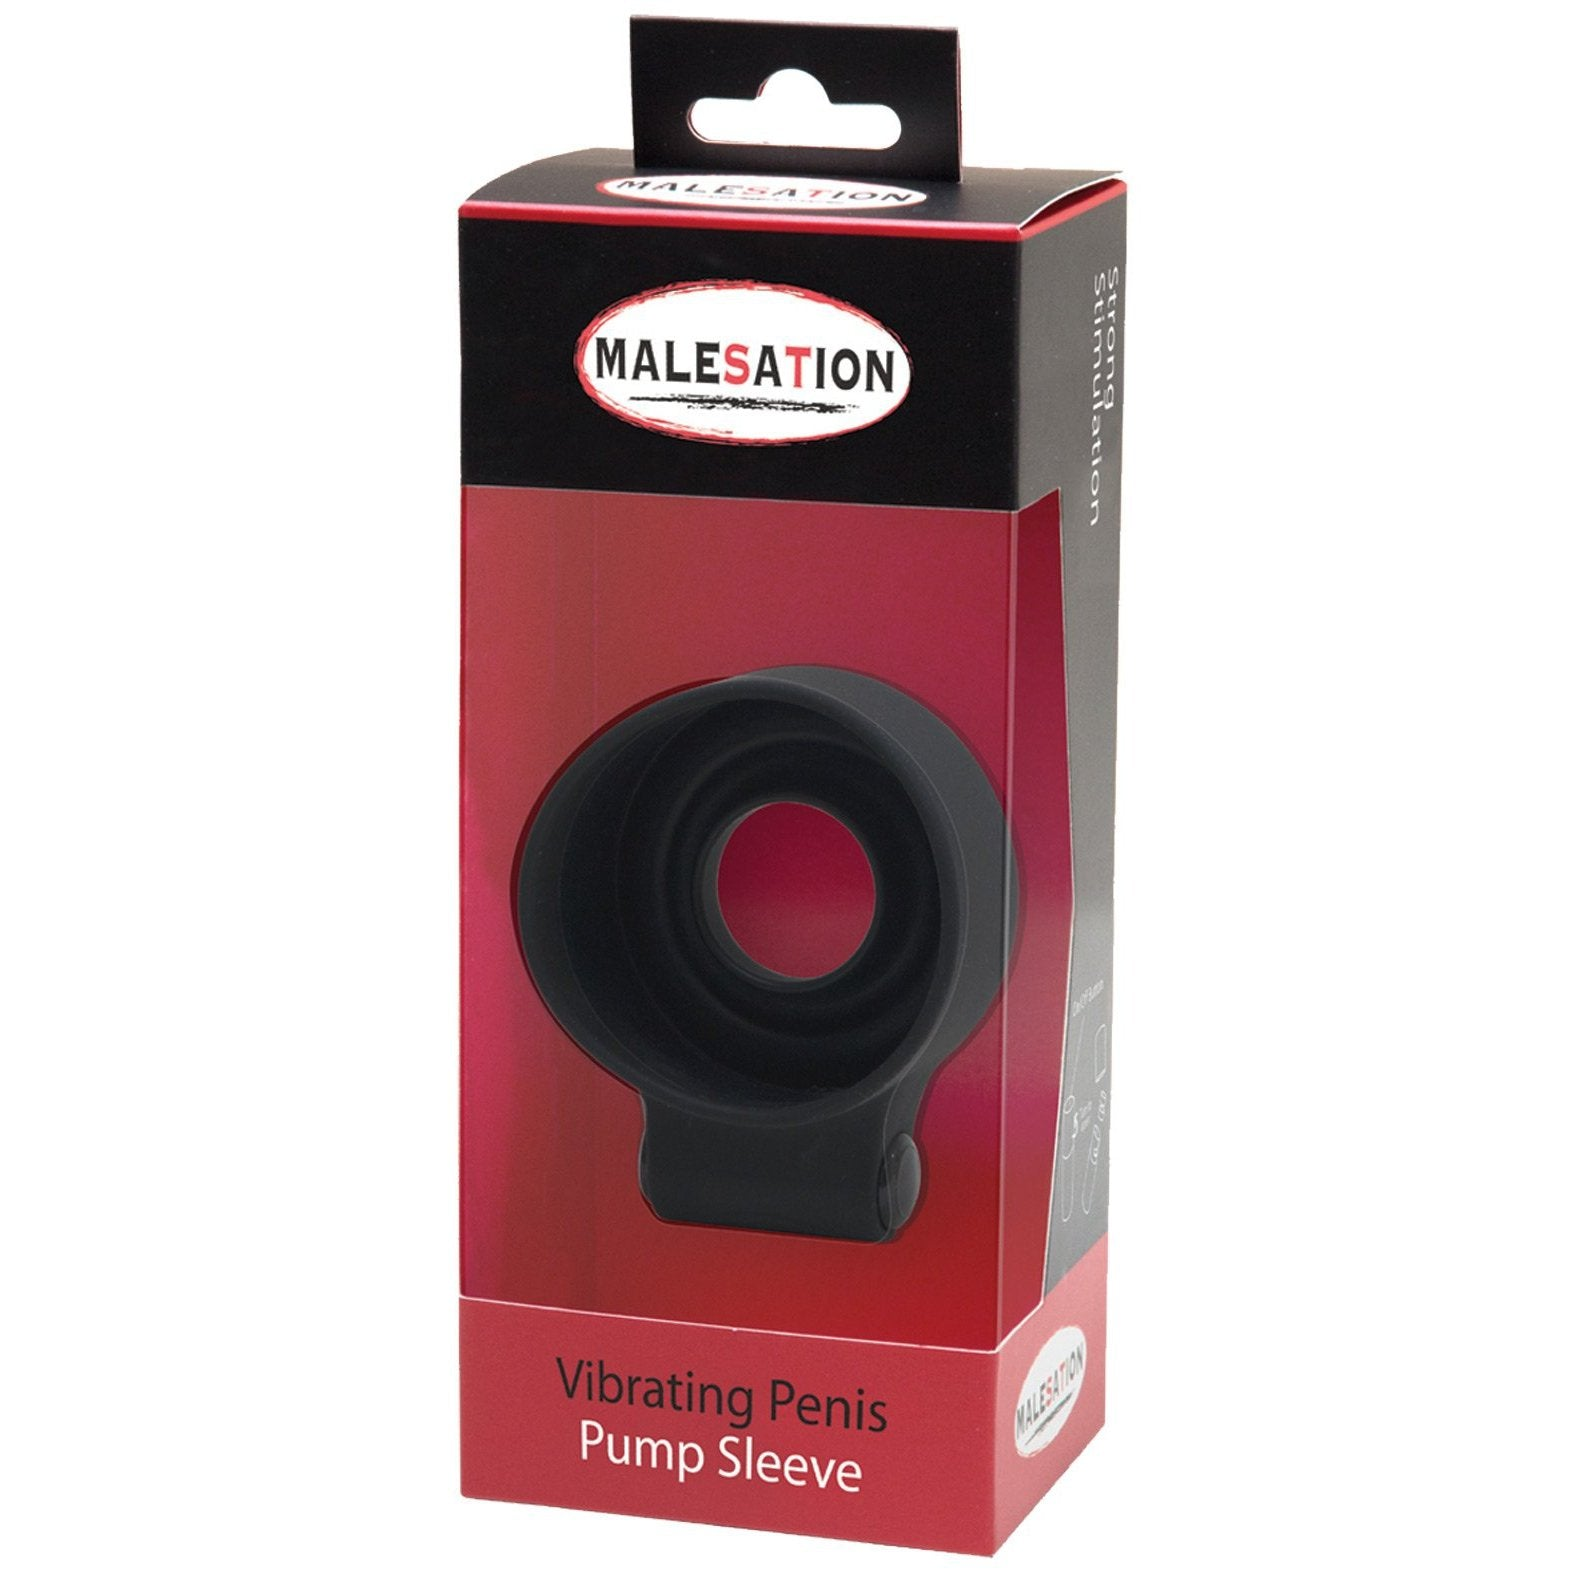 Malesation Vibrating Penis Pump Sleeve - Gay Men's Sex Toys - Adam's Toy Box